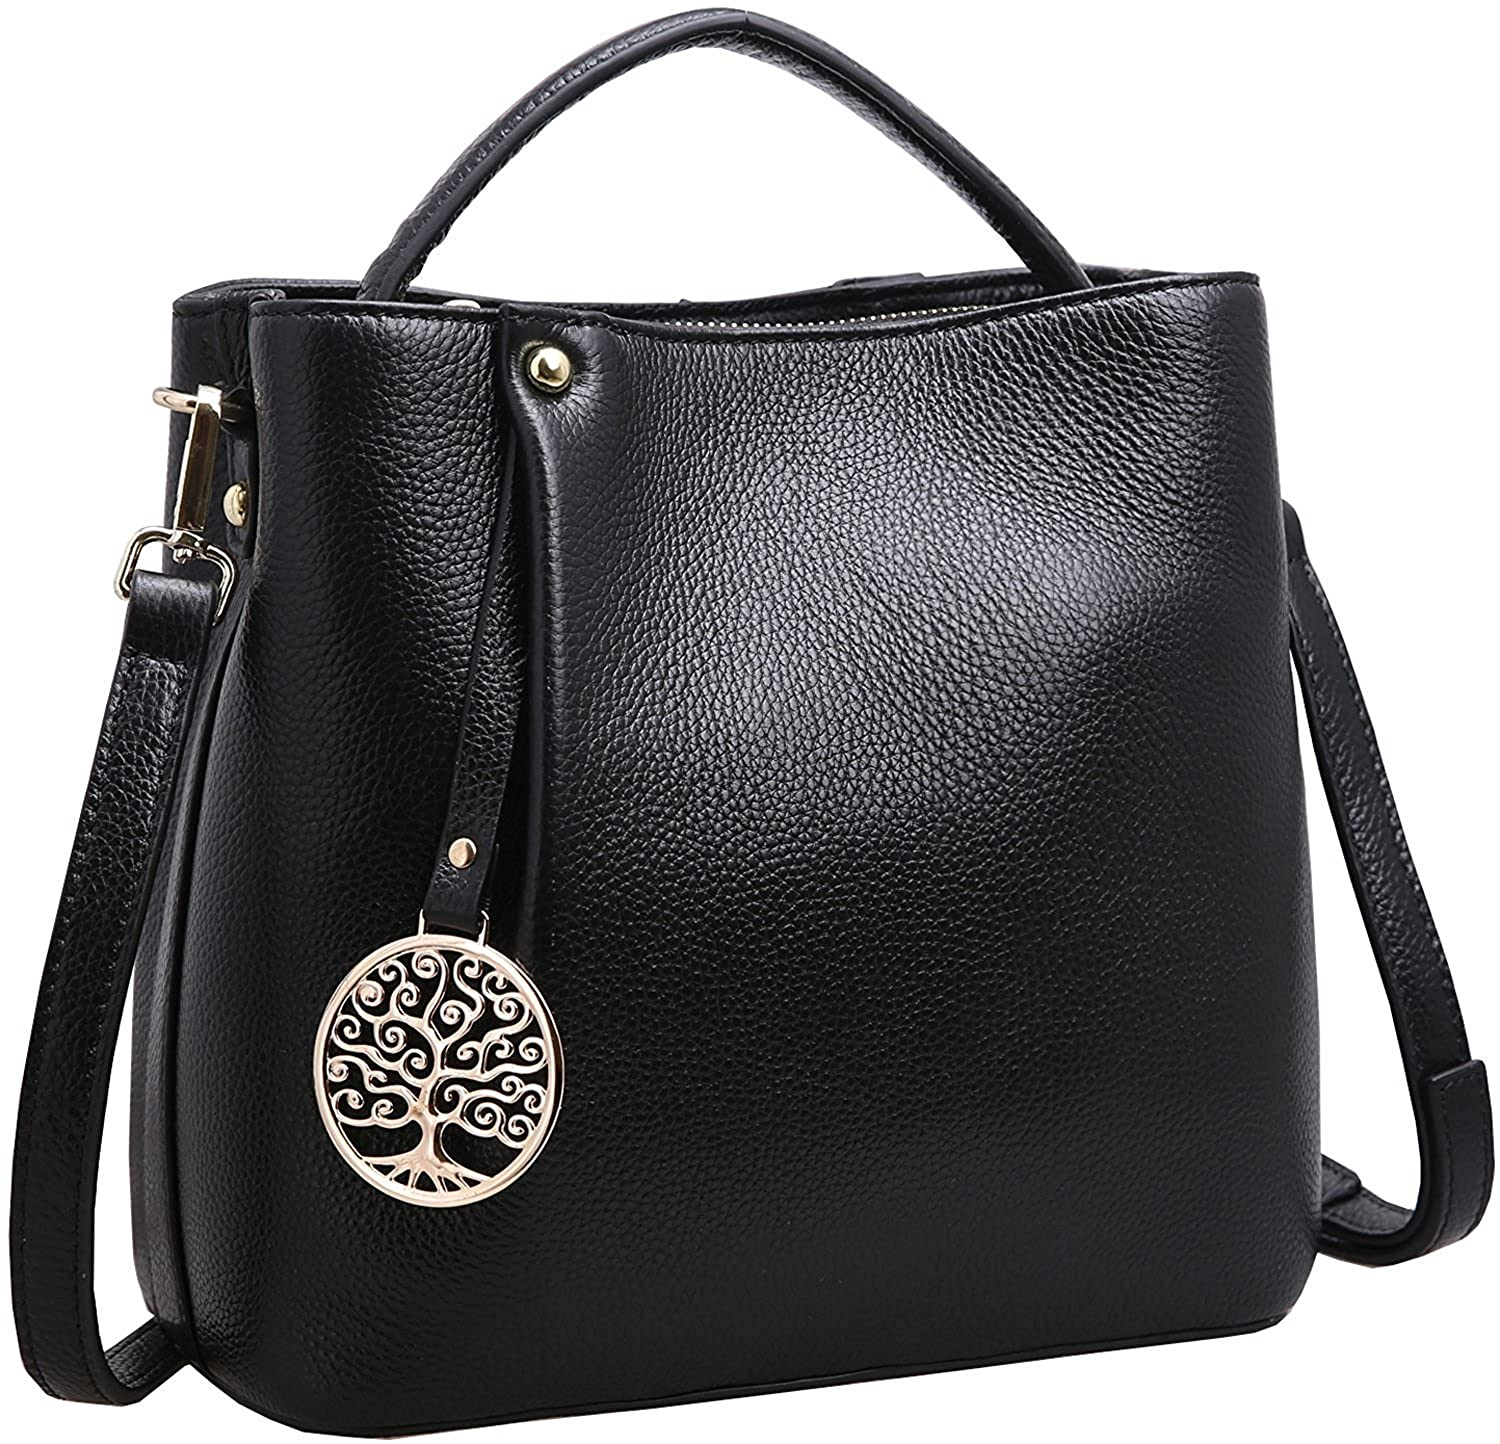 ffa366fca64c Iswee Women s Genuine Leather Bucket Bag Small Tote Purse Top Handle Handbag  Crossbody Shoulder Bag Messenger Bag for Women (Black)  Handbags  Amazon.com